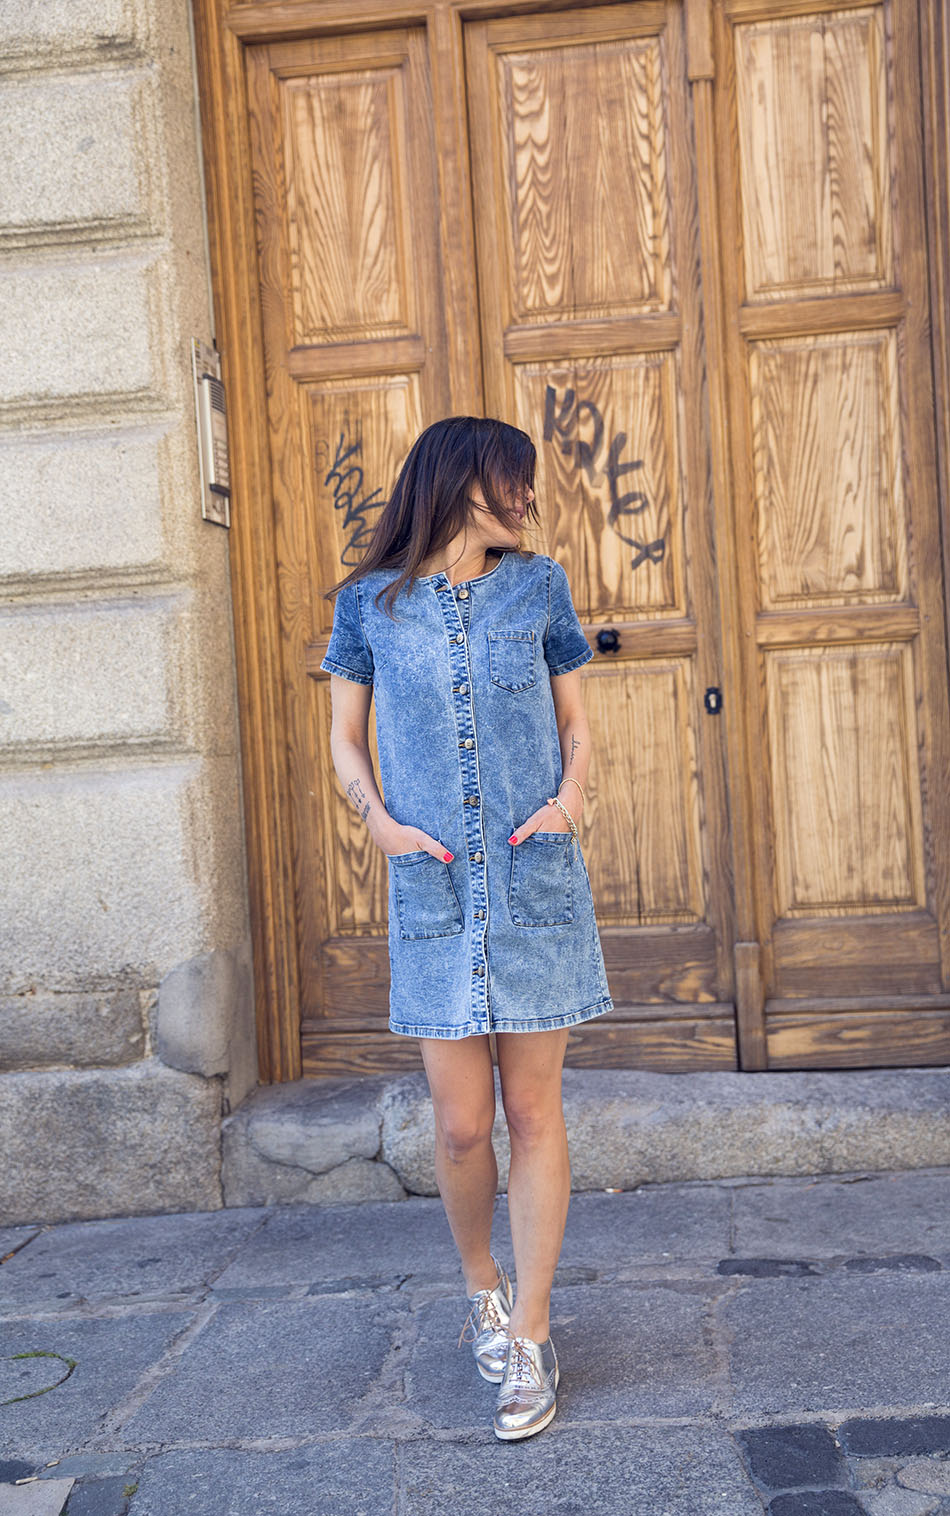 street-style-denim-dress-merkal-silver-shoes-02